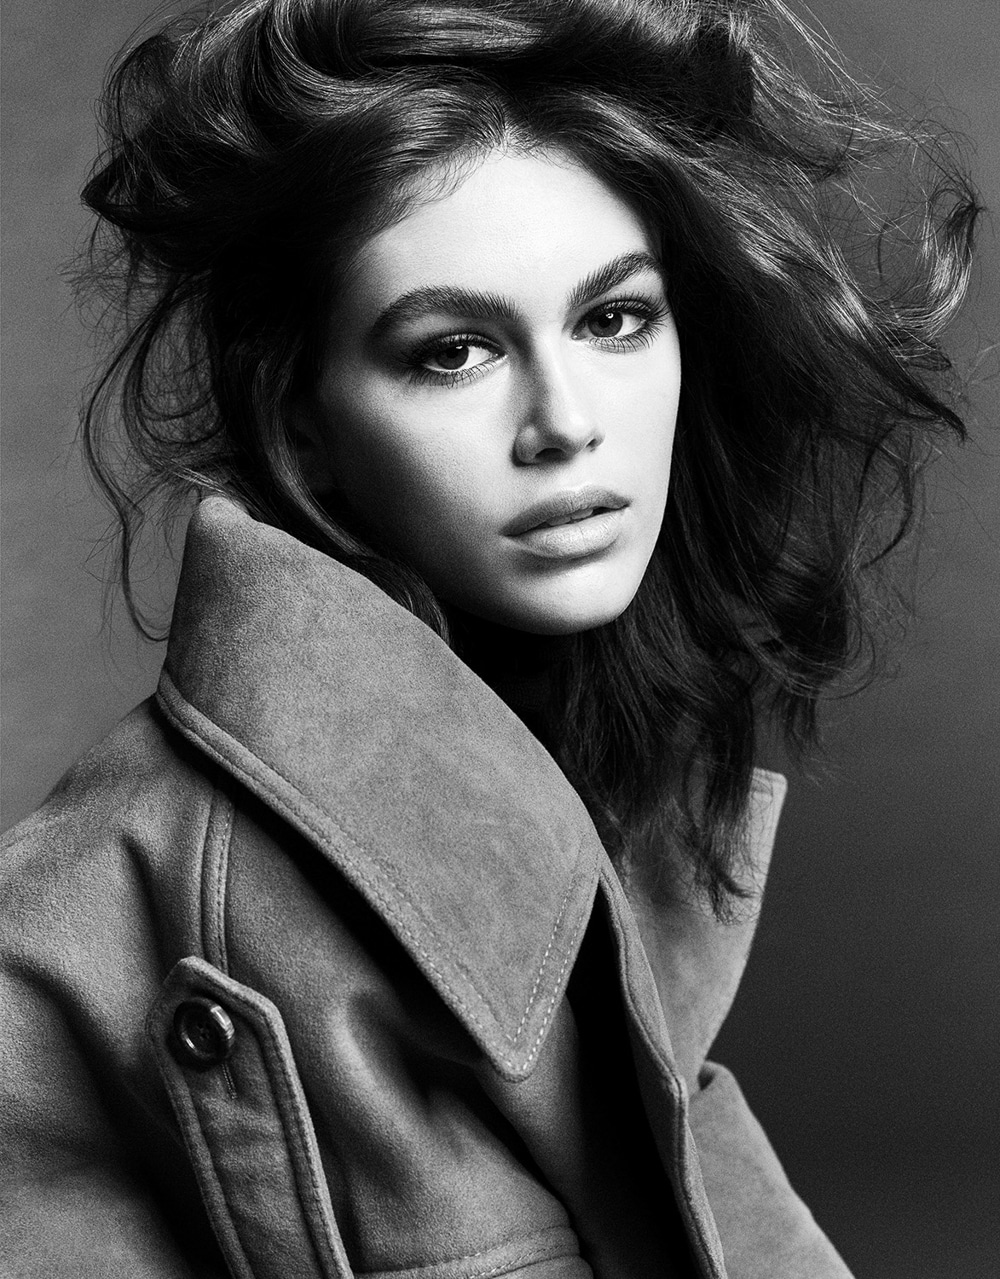 Kaia Gerber by Luigi and Iango for Vogue Japan